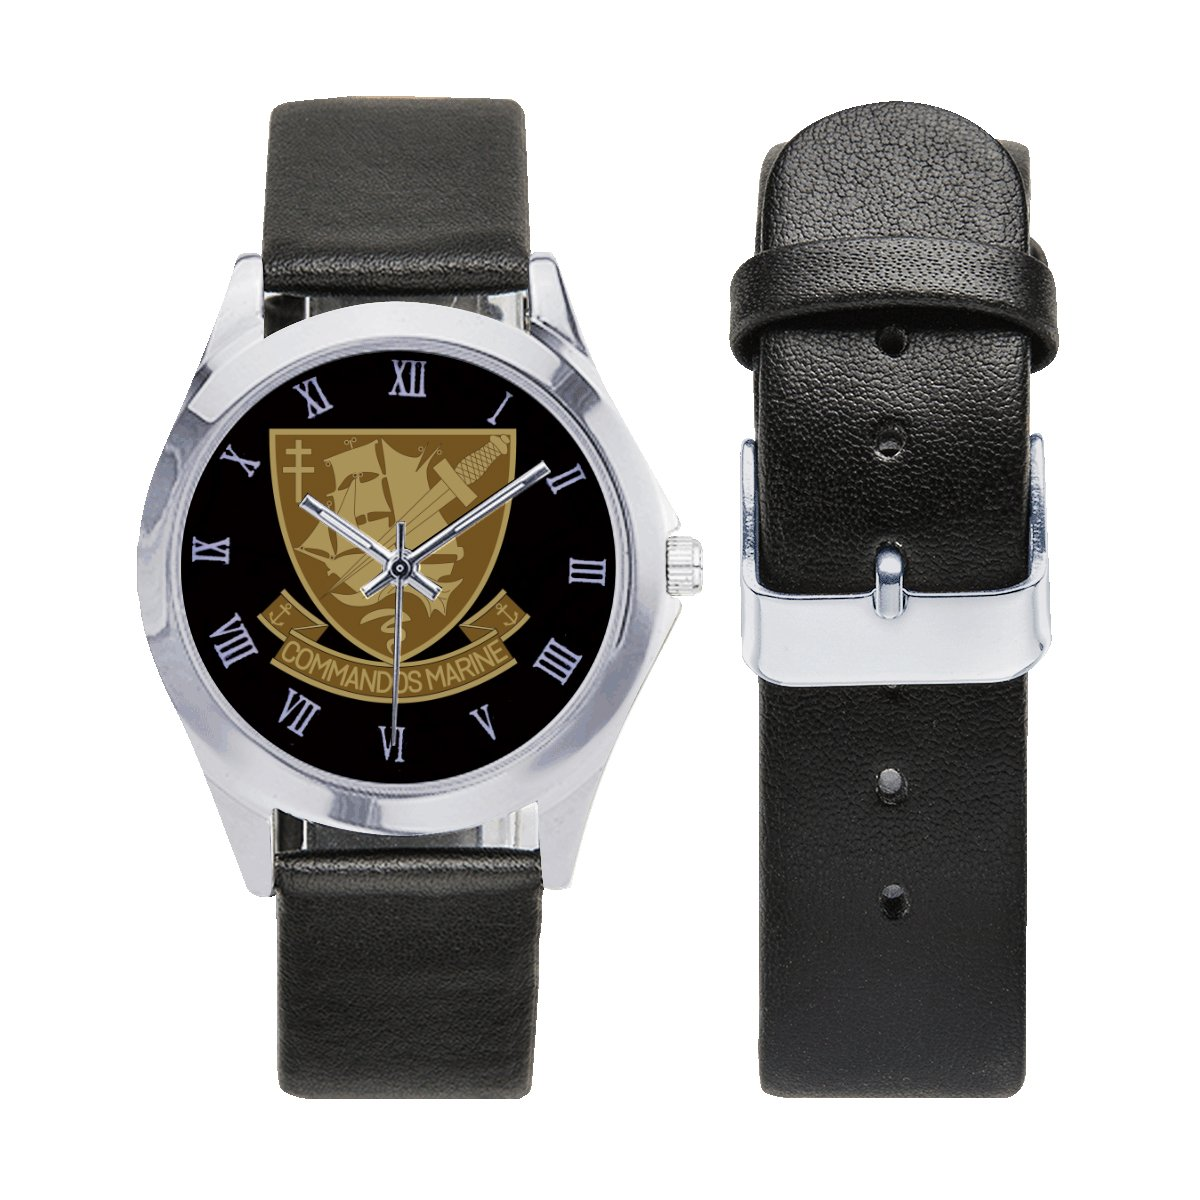 France Navy Bérets Verts (Green Baret) Commandos Marine Leather Strap Watch a perfect accessory